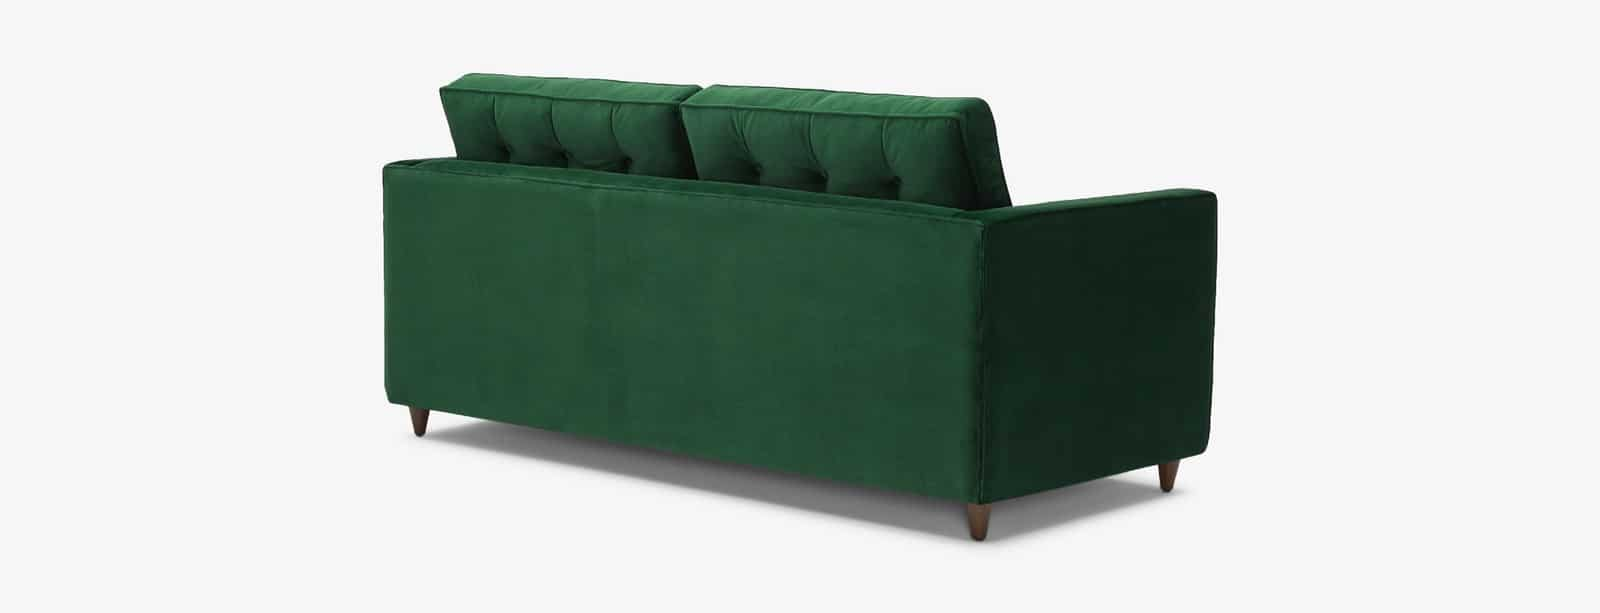 Braxton-Sleeper-Sofa-Royale-Evergreen-T1-111